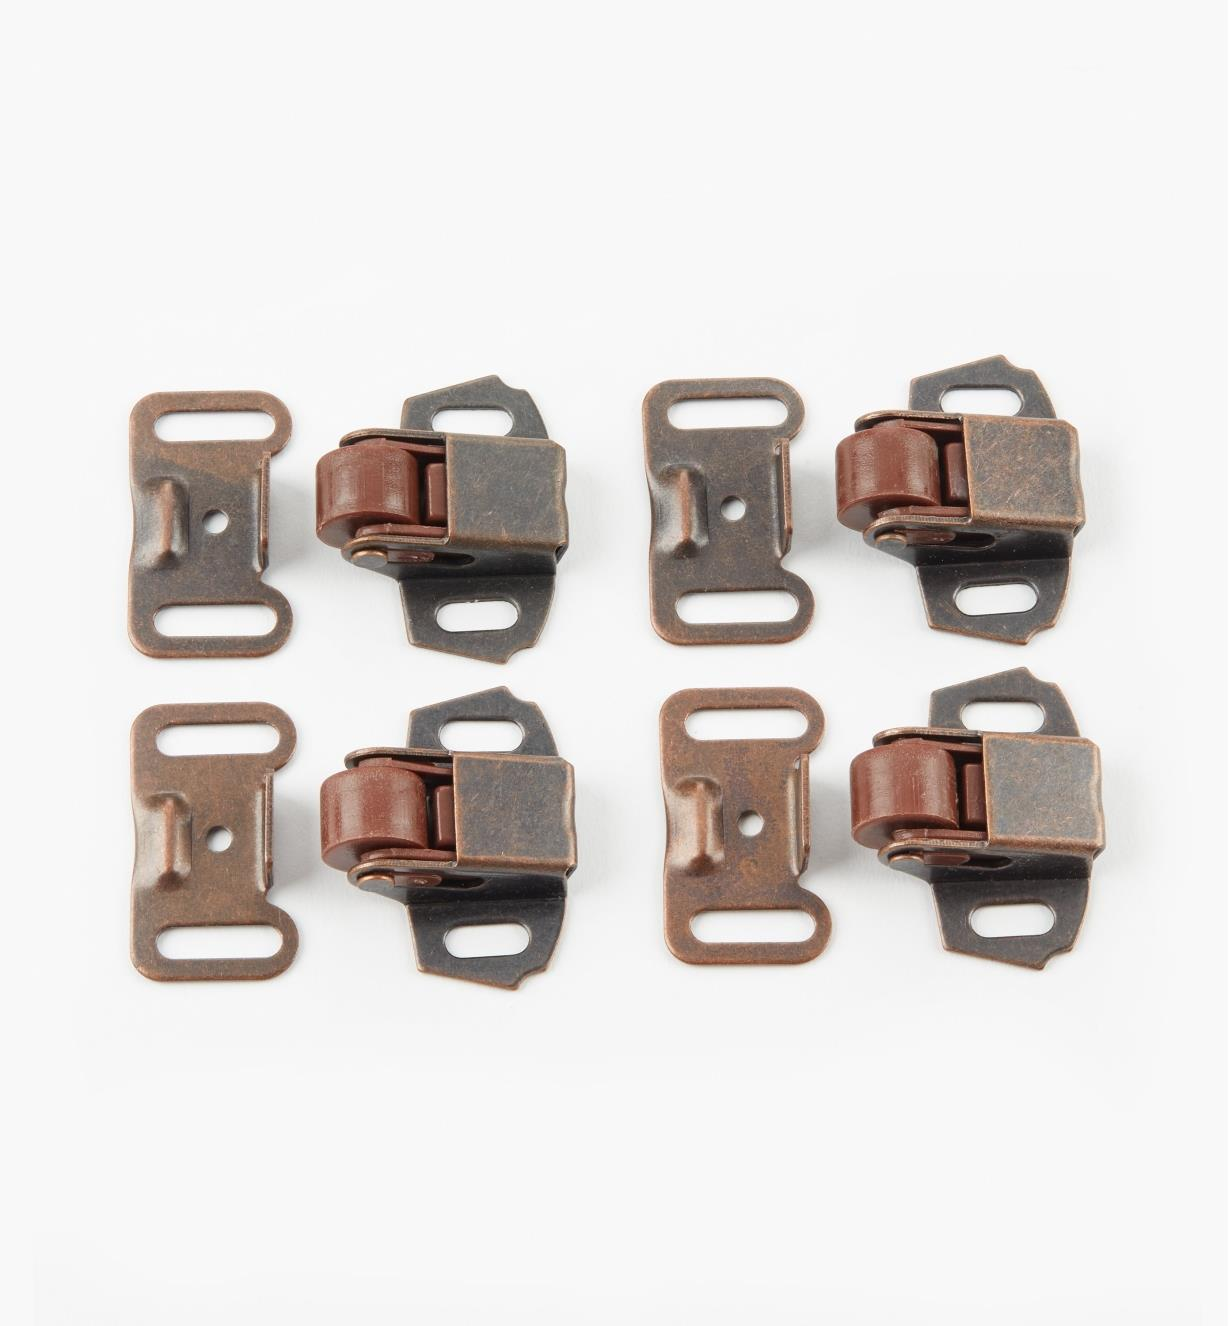 01L0301 - Spring Roller Catches, pkg. of 4